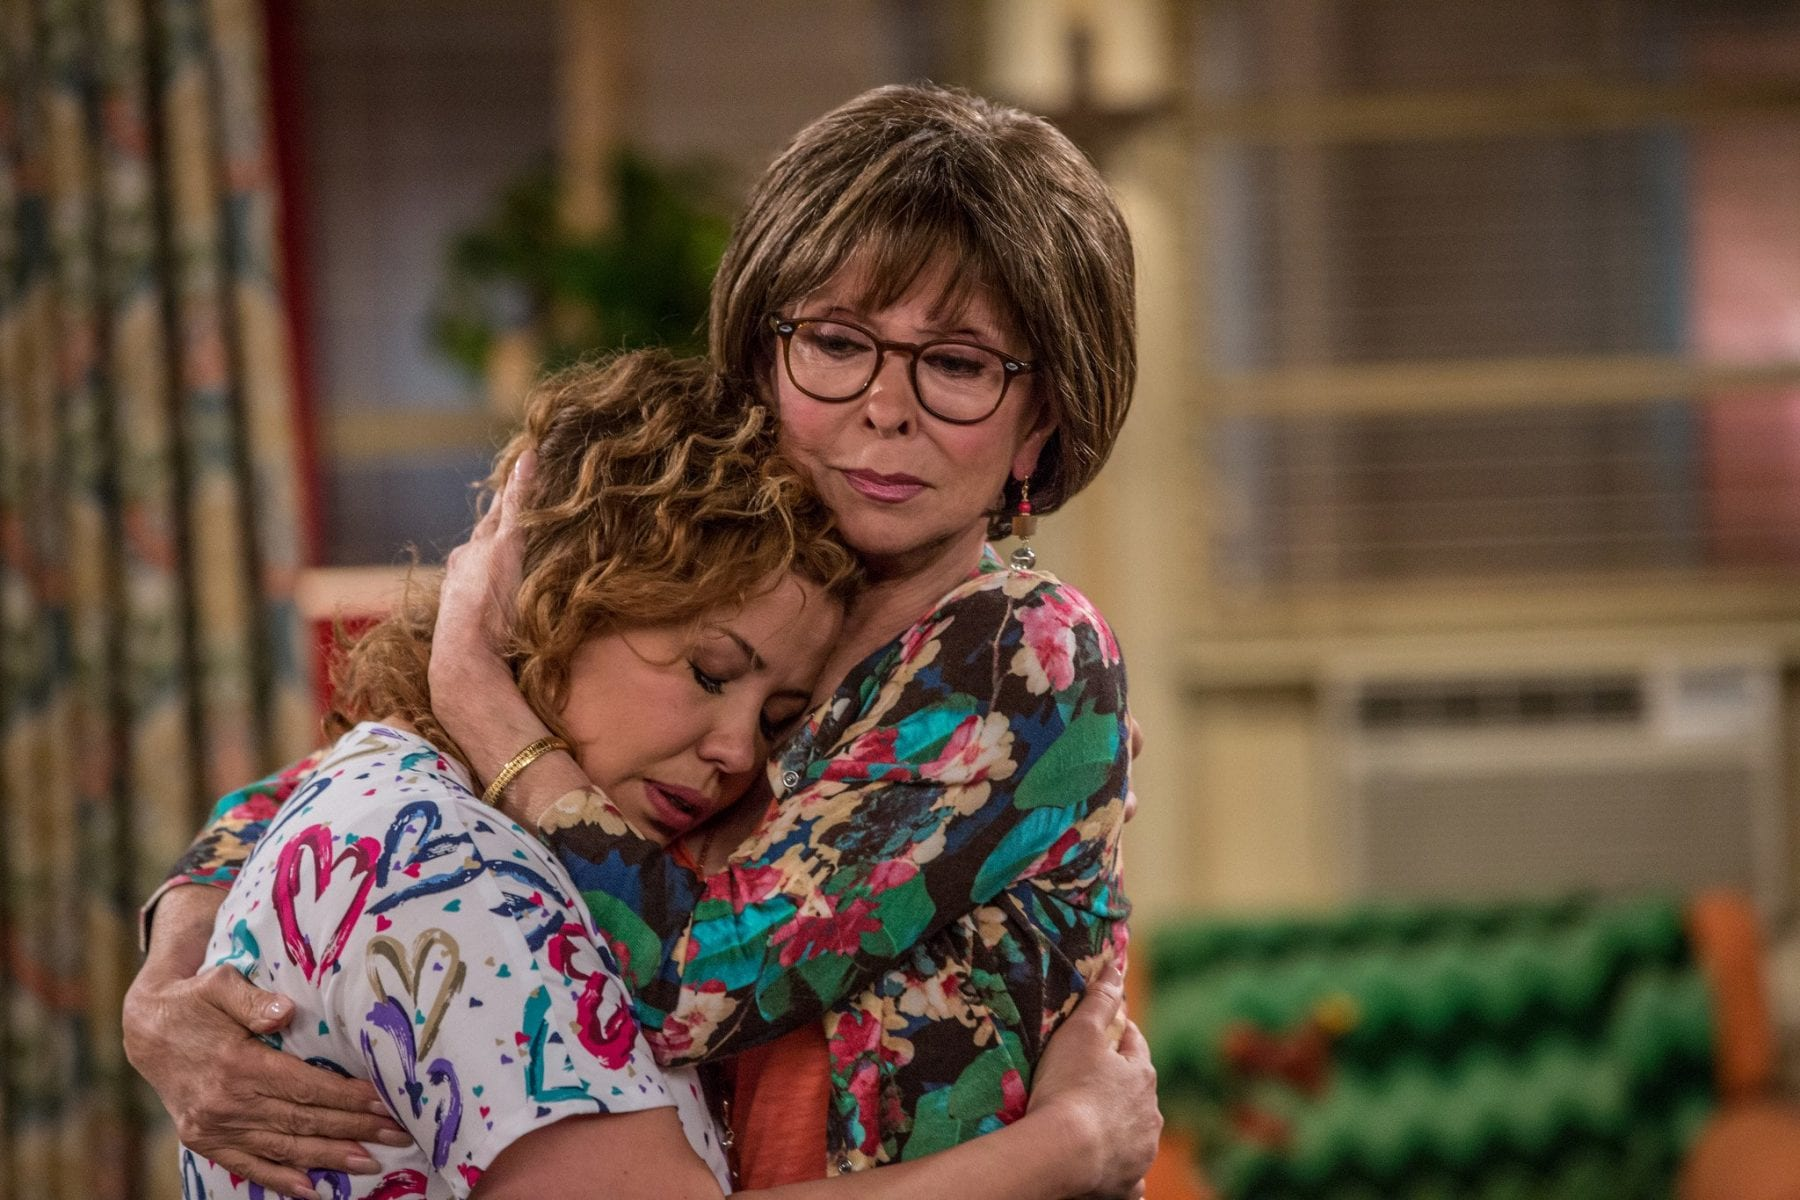 Lydia and Penelope share a touching mother-daughter embrace